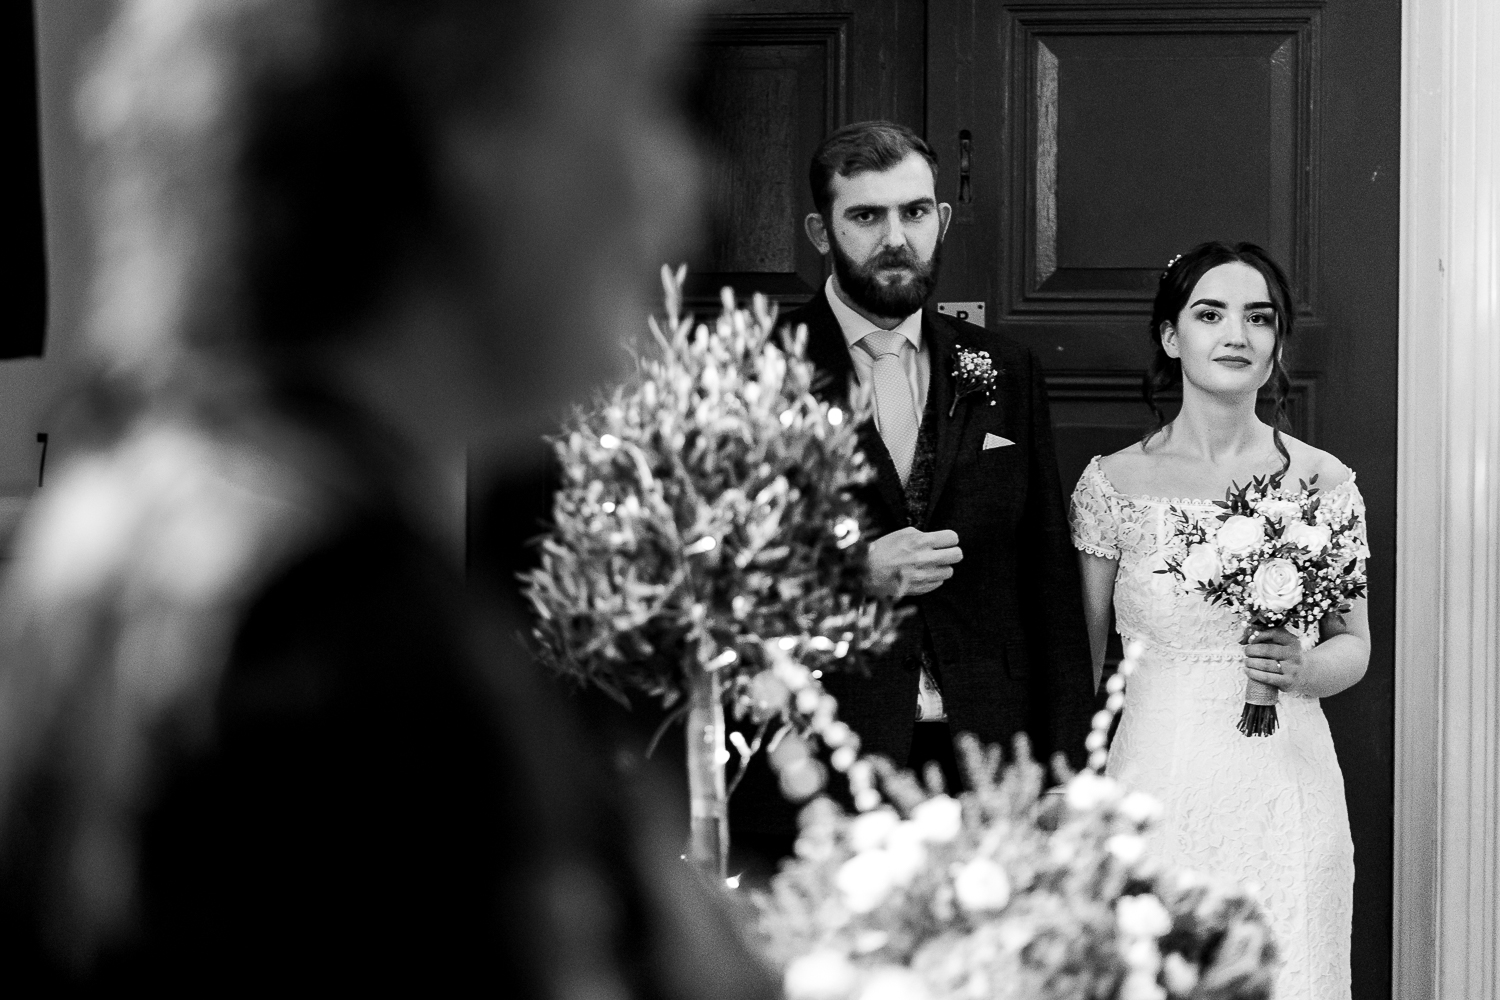 Bride and groom looking on at an opera singer